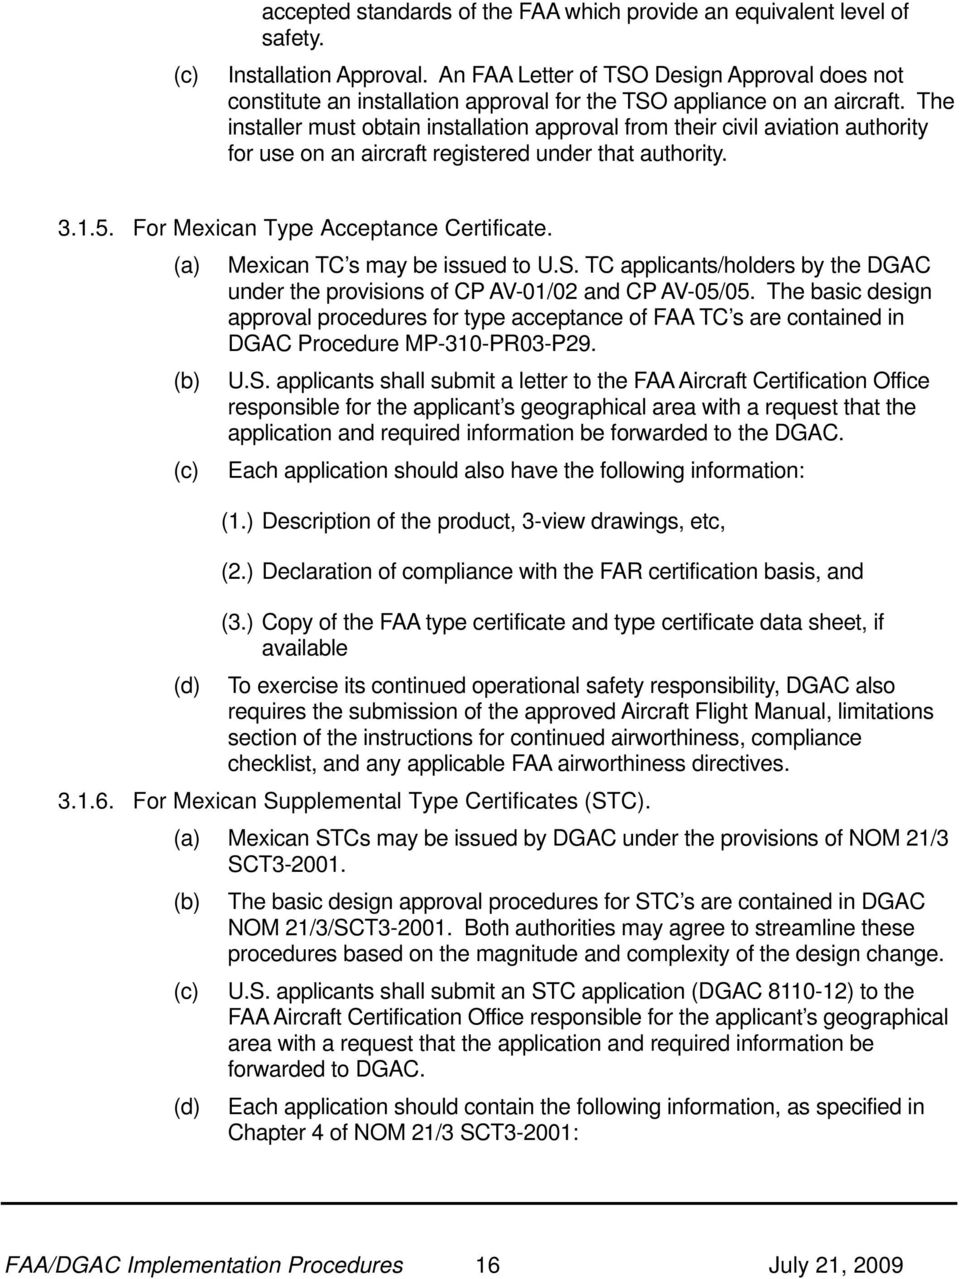 The installer must obtain installation approval from their civil aviation authority for use on an aircraft registered under that authority. 3.1.5. For Mexican Type Acceptance Certificate.